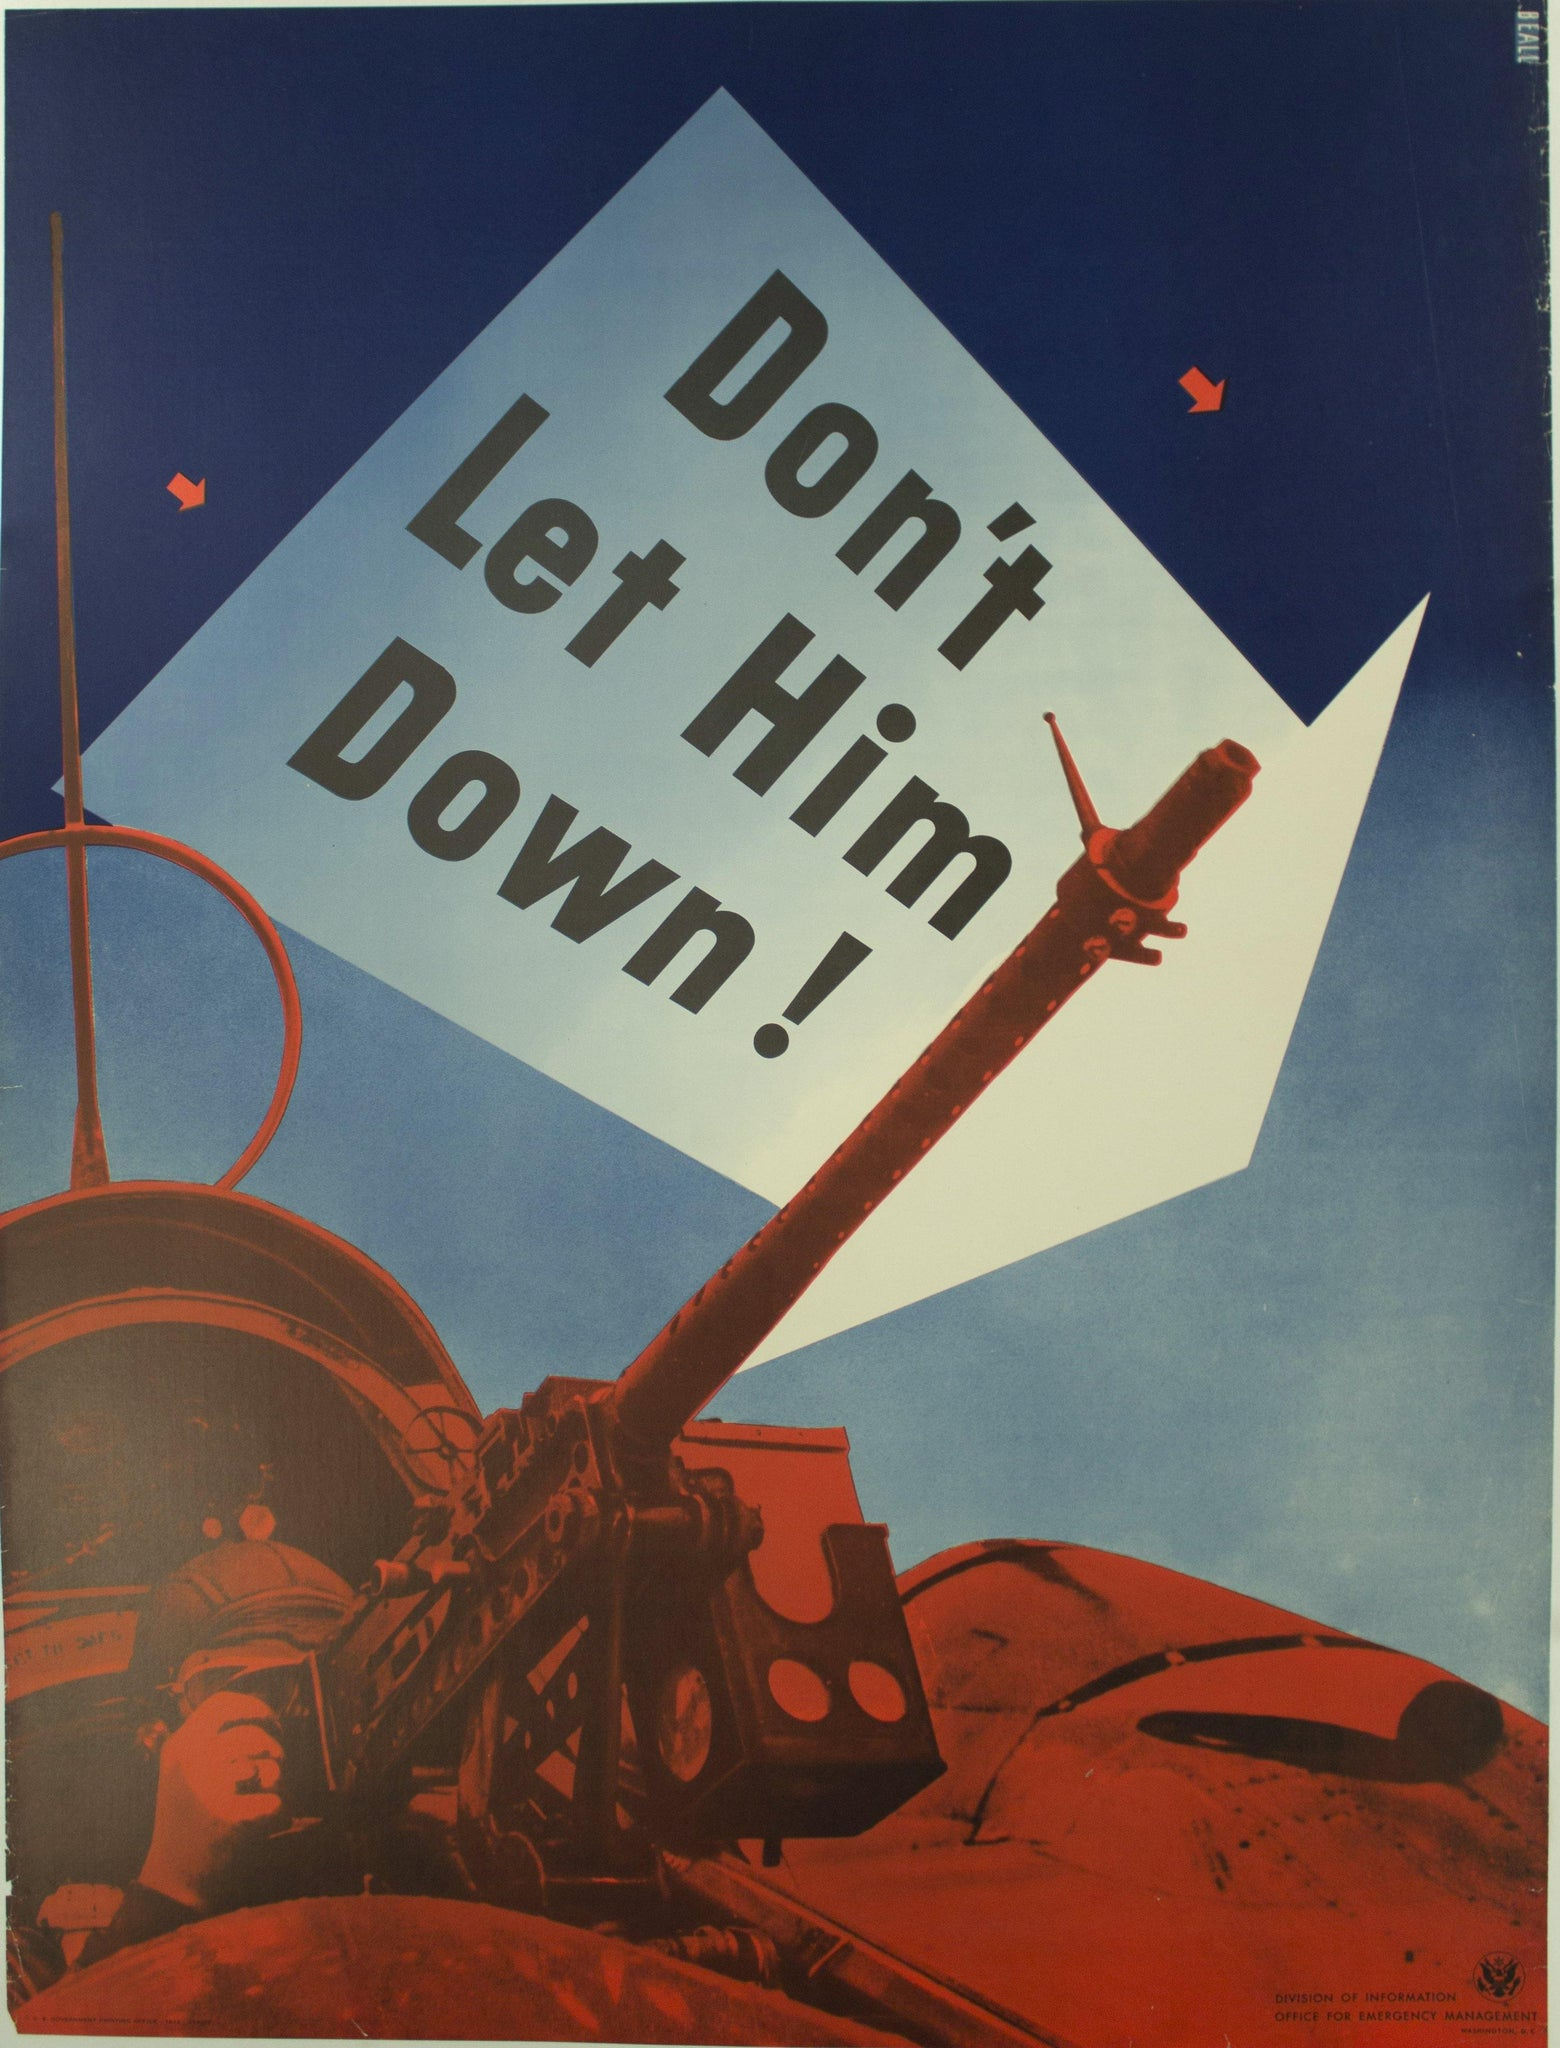 1942 Don't Let Him Down! Division of Information Office for Emergency Management Washington D. C.